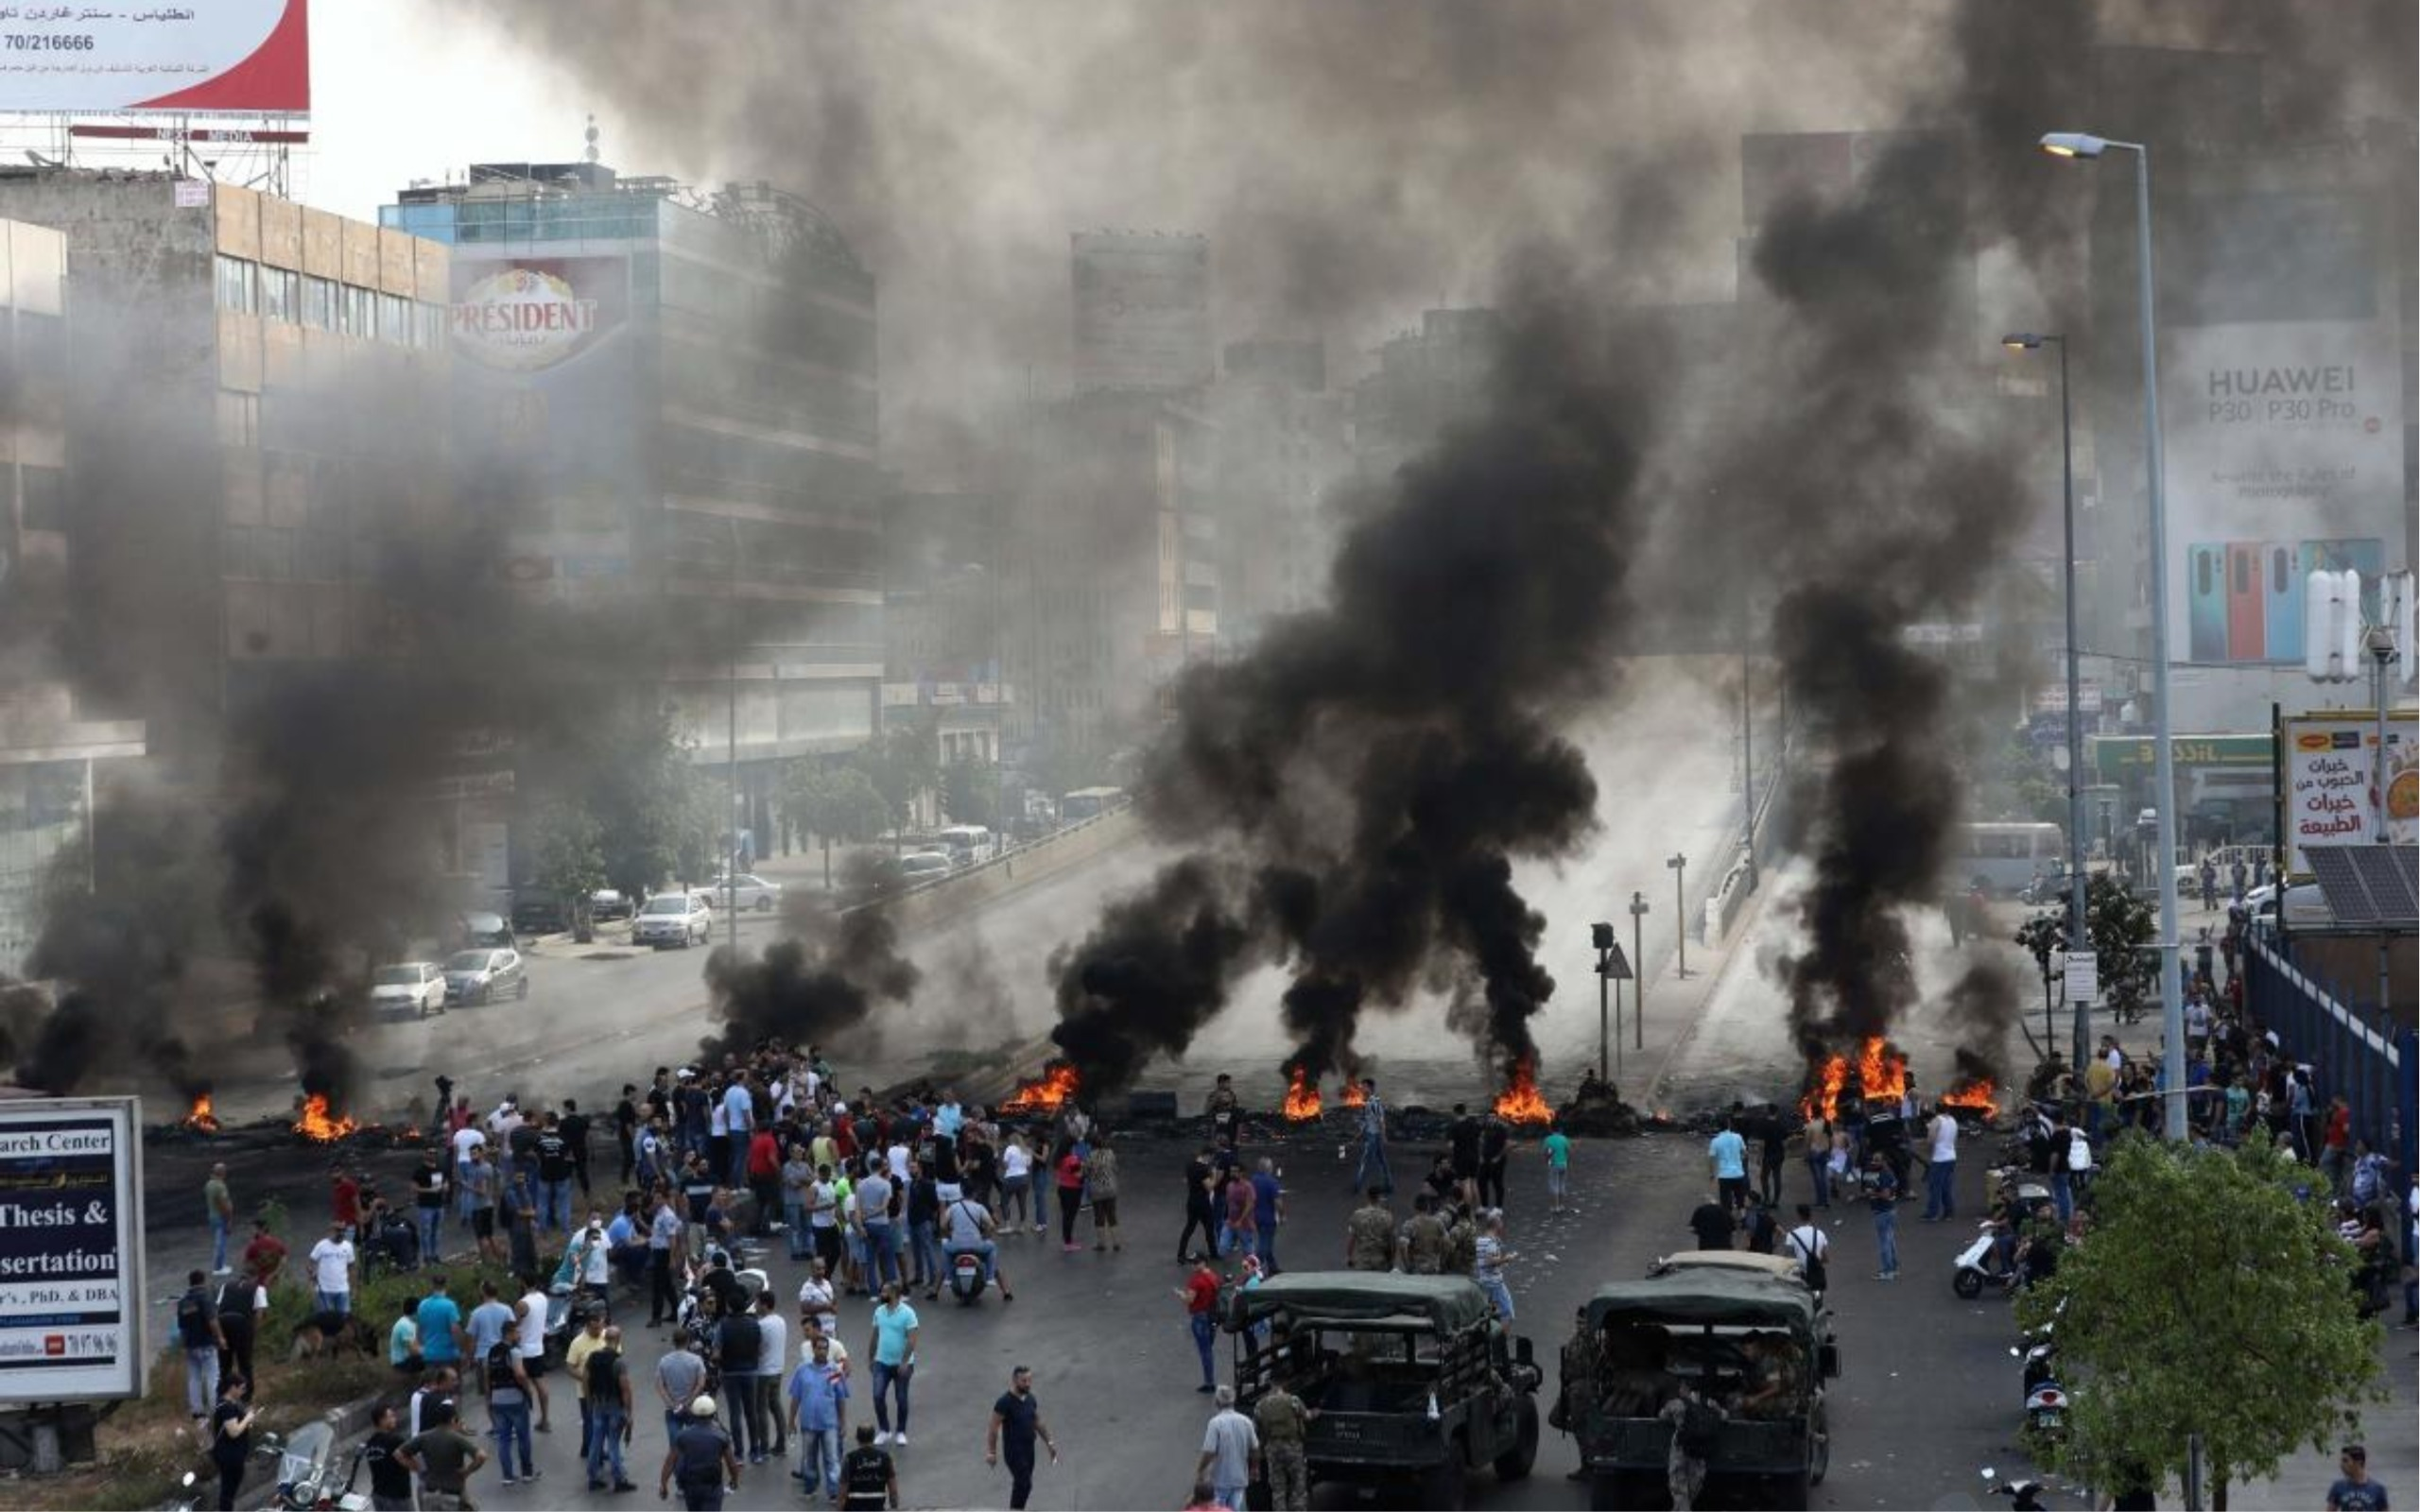 Lebanon Explosion: Government's Negligence Triggers Violent Protests In Beirut